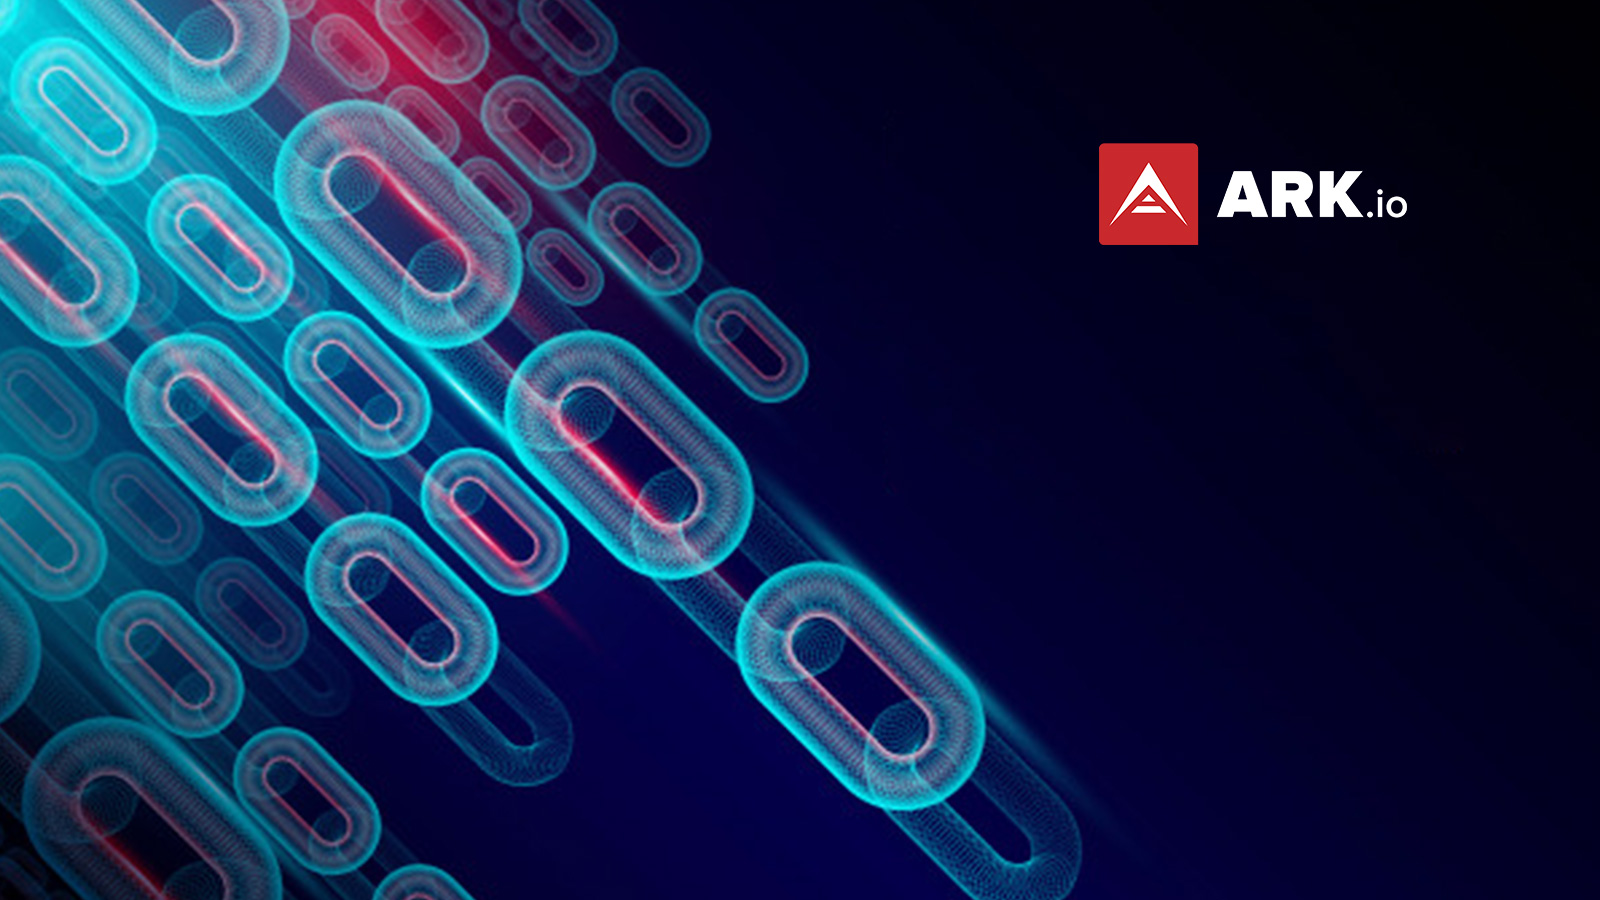 ARK's Blockchain Technology Selected to Power nOS Virtual Operating